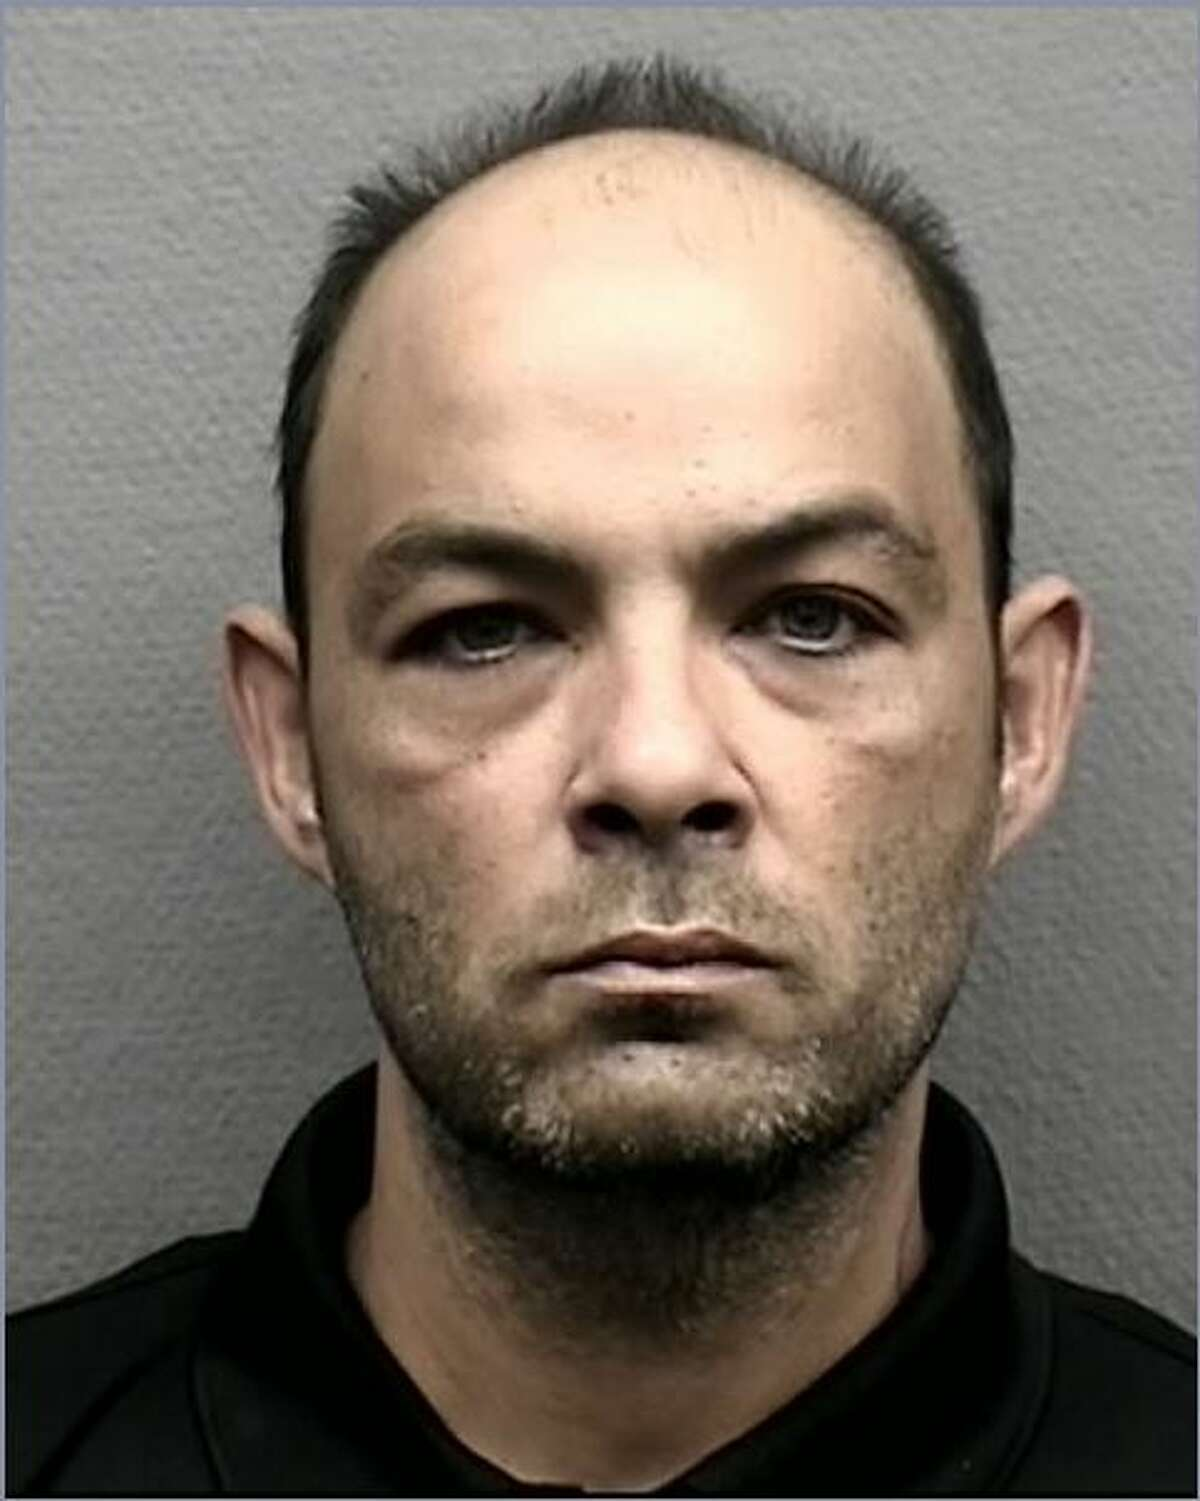 John Thompson, 40, is charged with burglary. According to the Harris County Precinct 1 Constable's Office, Thompson was part of a scam where he posed as a tree trimmer and then robbed homes.